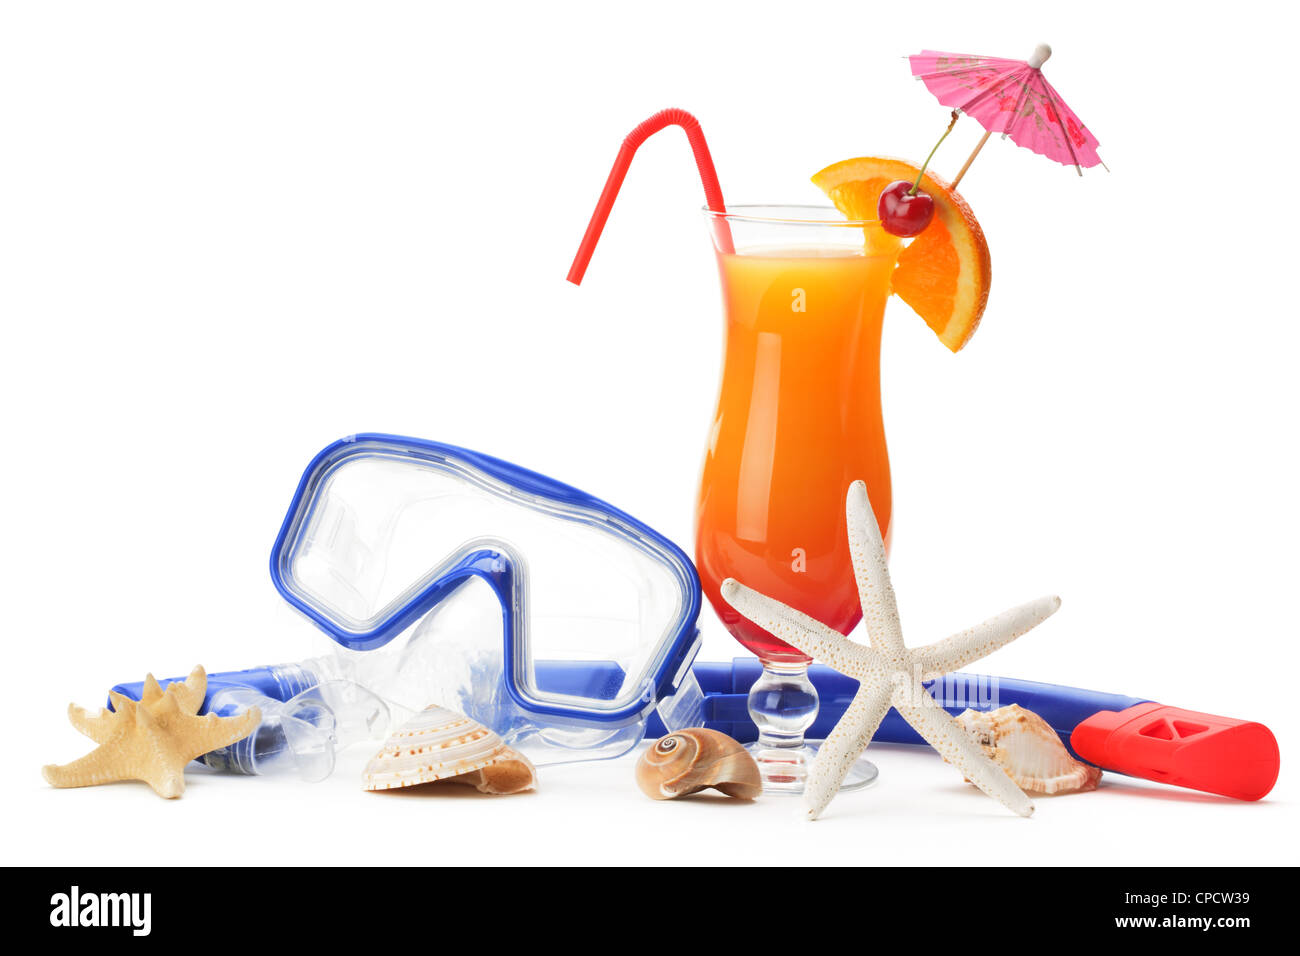 Diving equipment and summer refreshing drink on white background - Stock Image